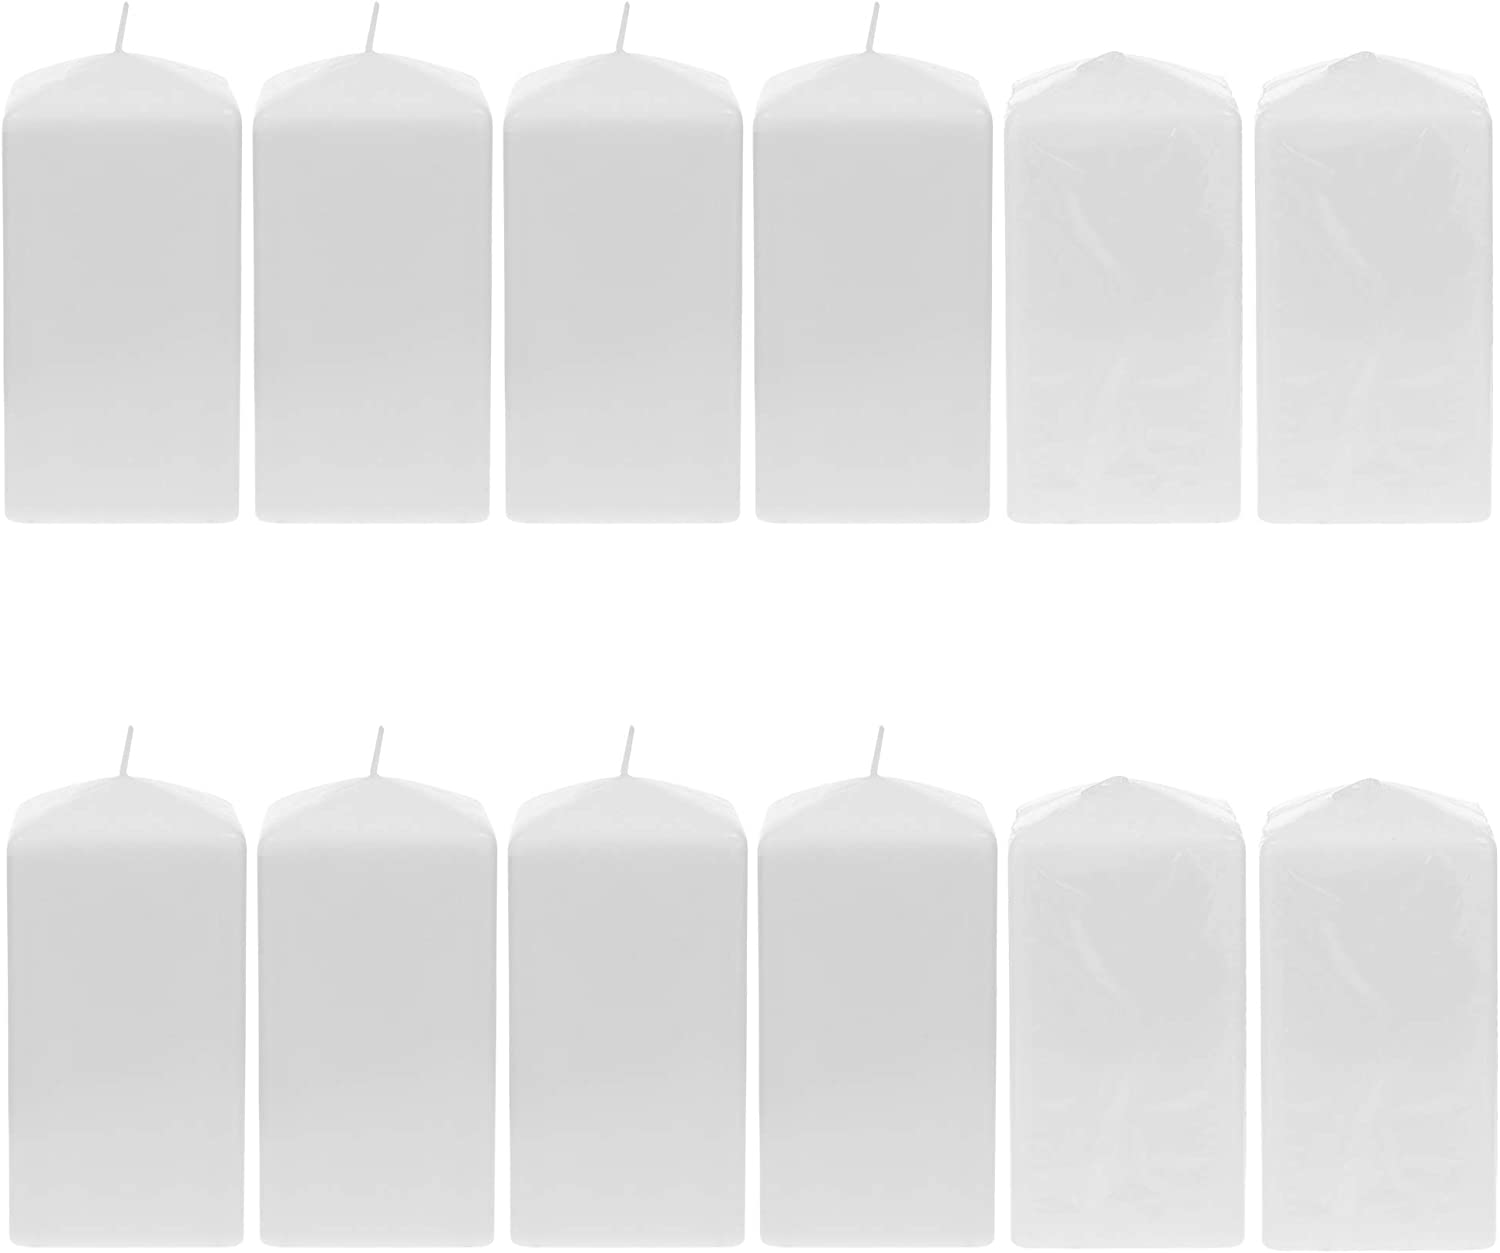 Courier shipping free shipping Mega Candles 12 Max 64% OFF pcs Unscented White Candl Square Top Pillar Dome